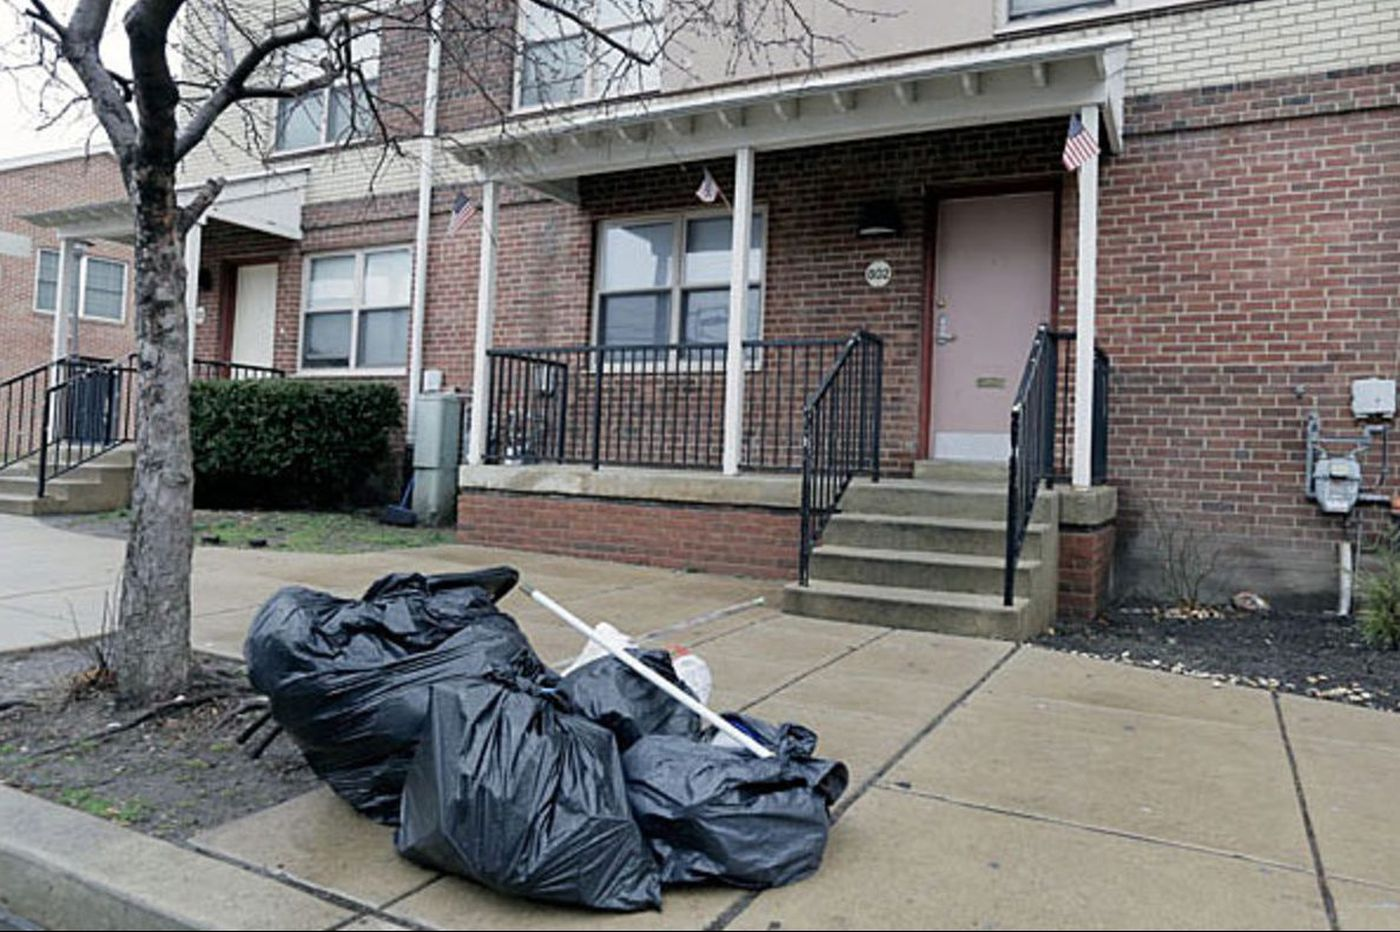 Philly ranks #4 on list of cities with most annoying neighbors